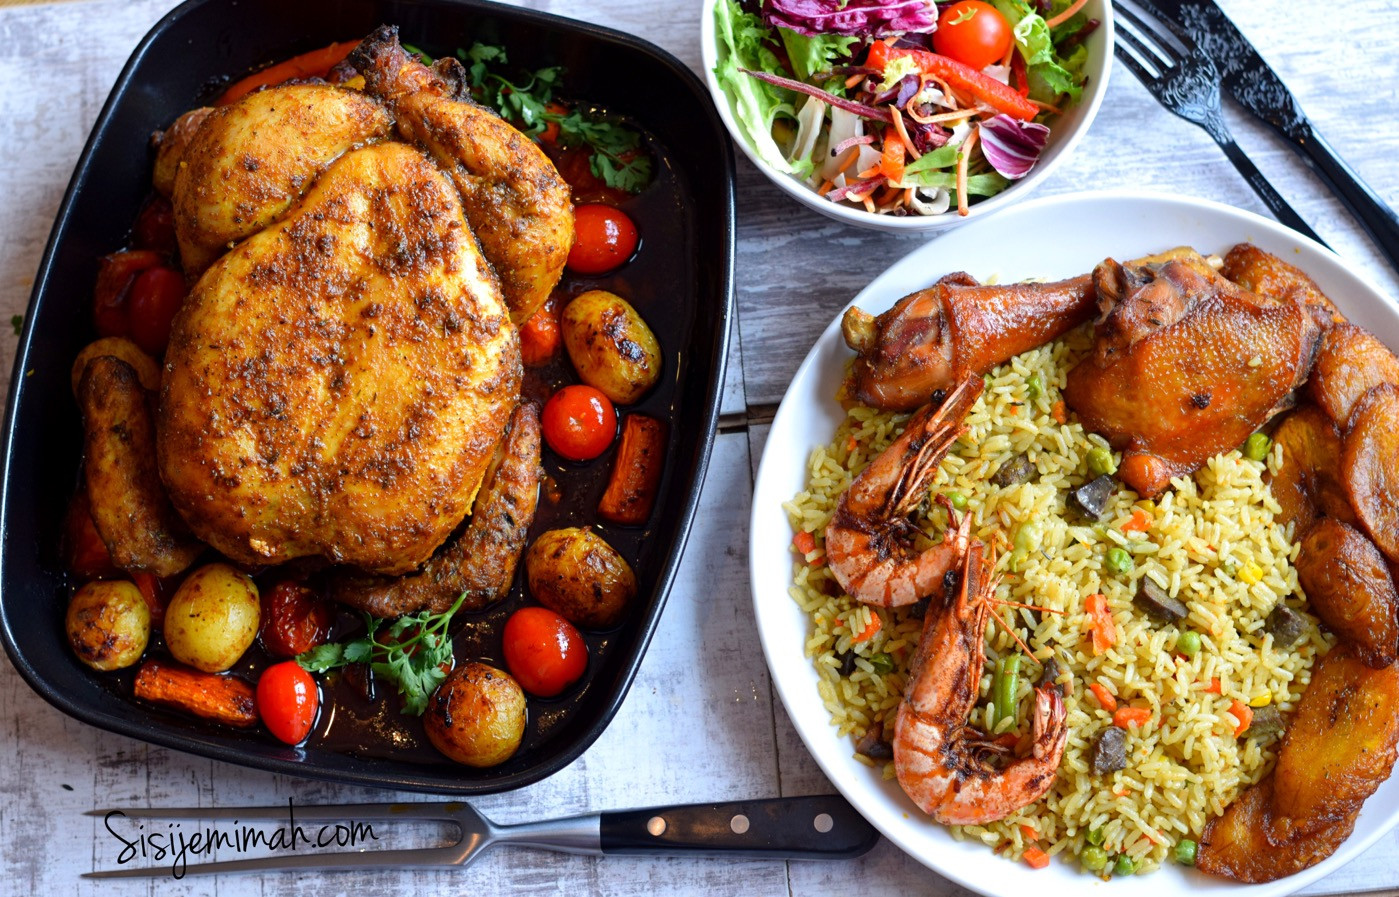 Whole Chicken Recipes  Oven Roasted Whole Chicken Recipe Sisi Jemimah